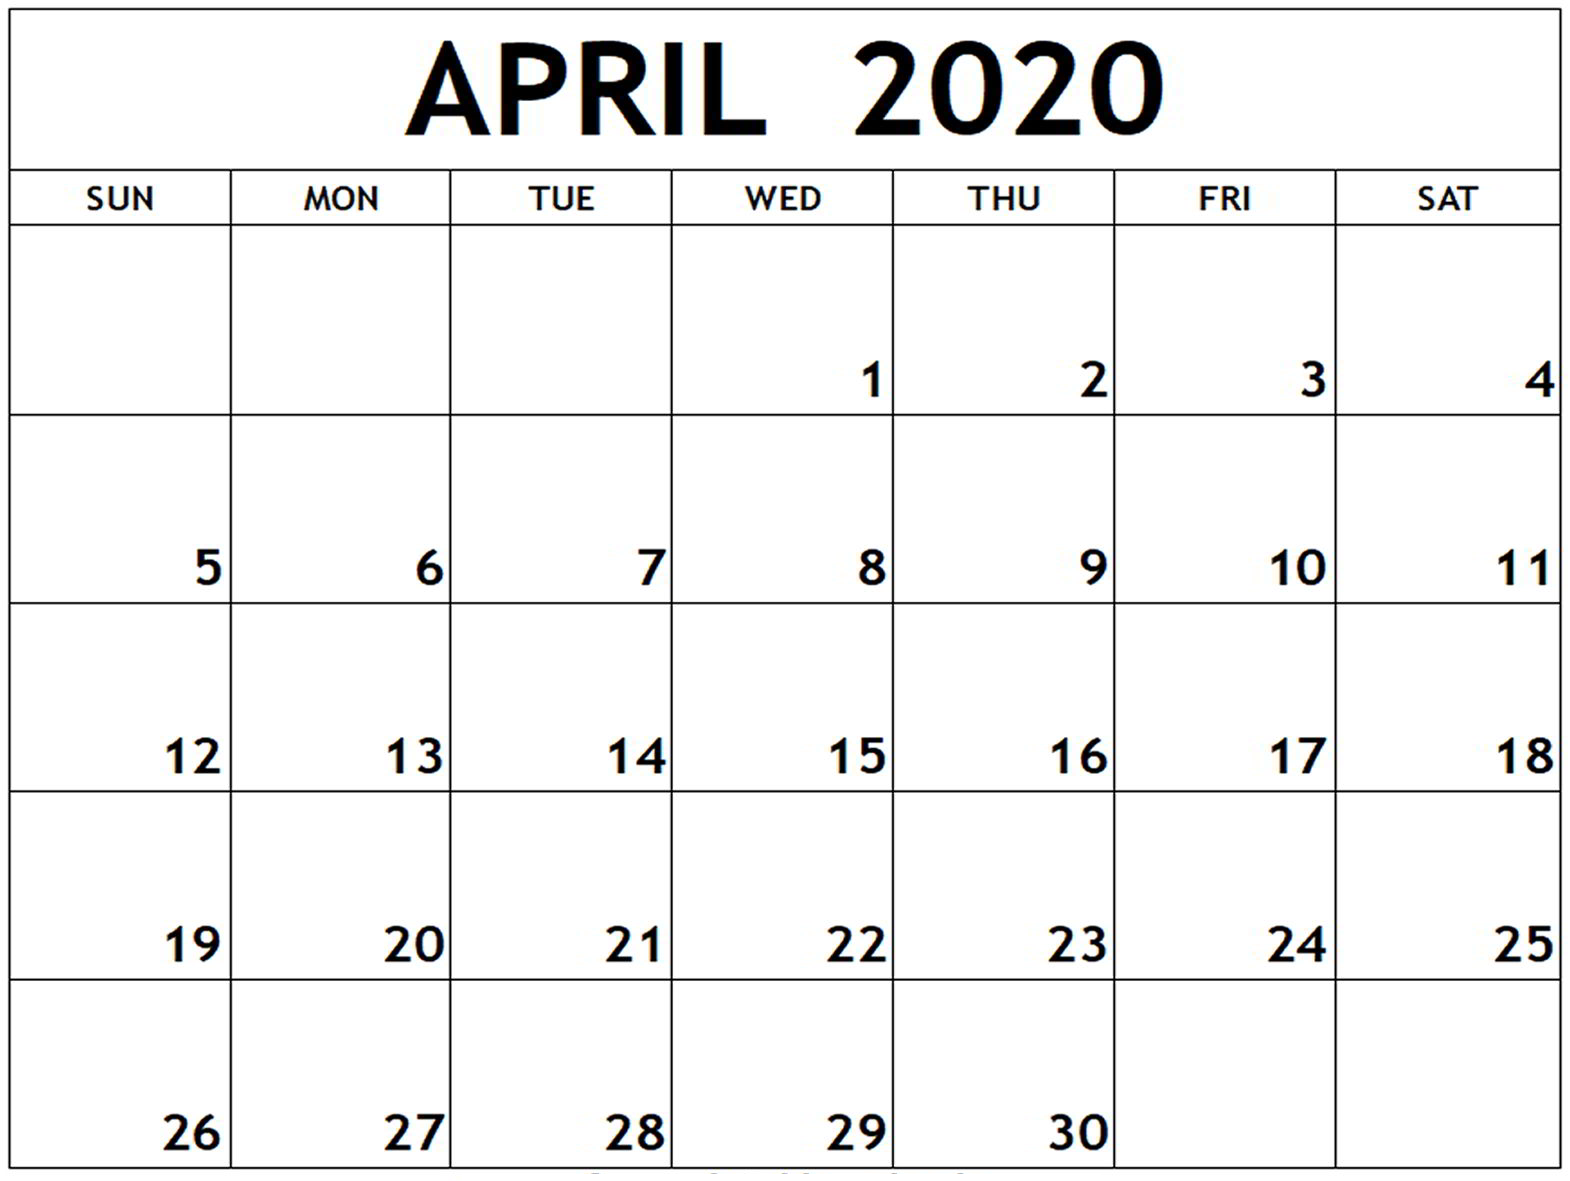 April 2020 Calendar Printable Full Page